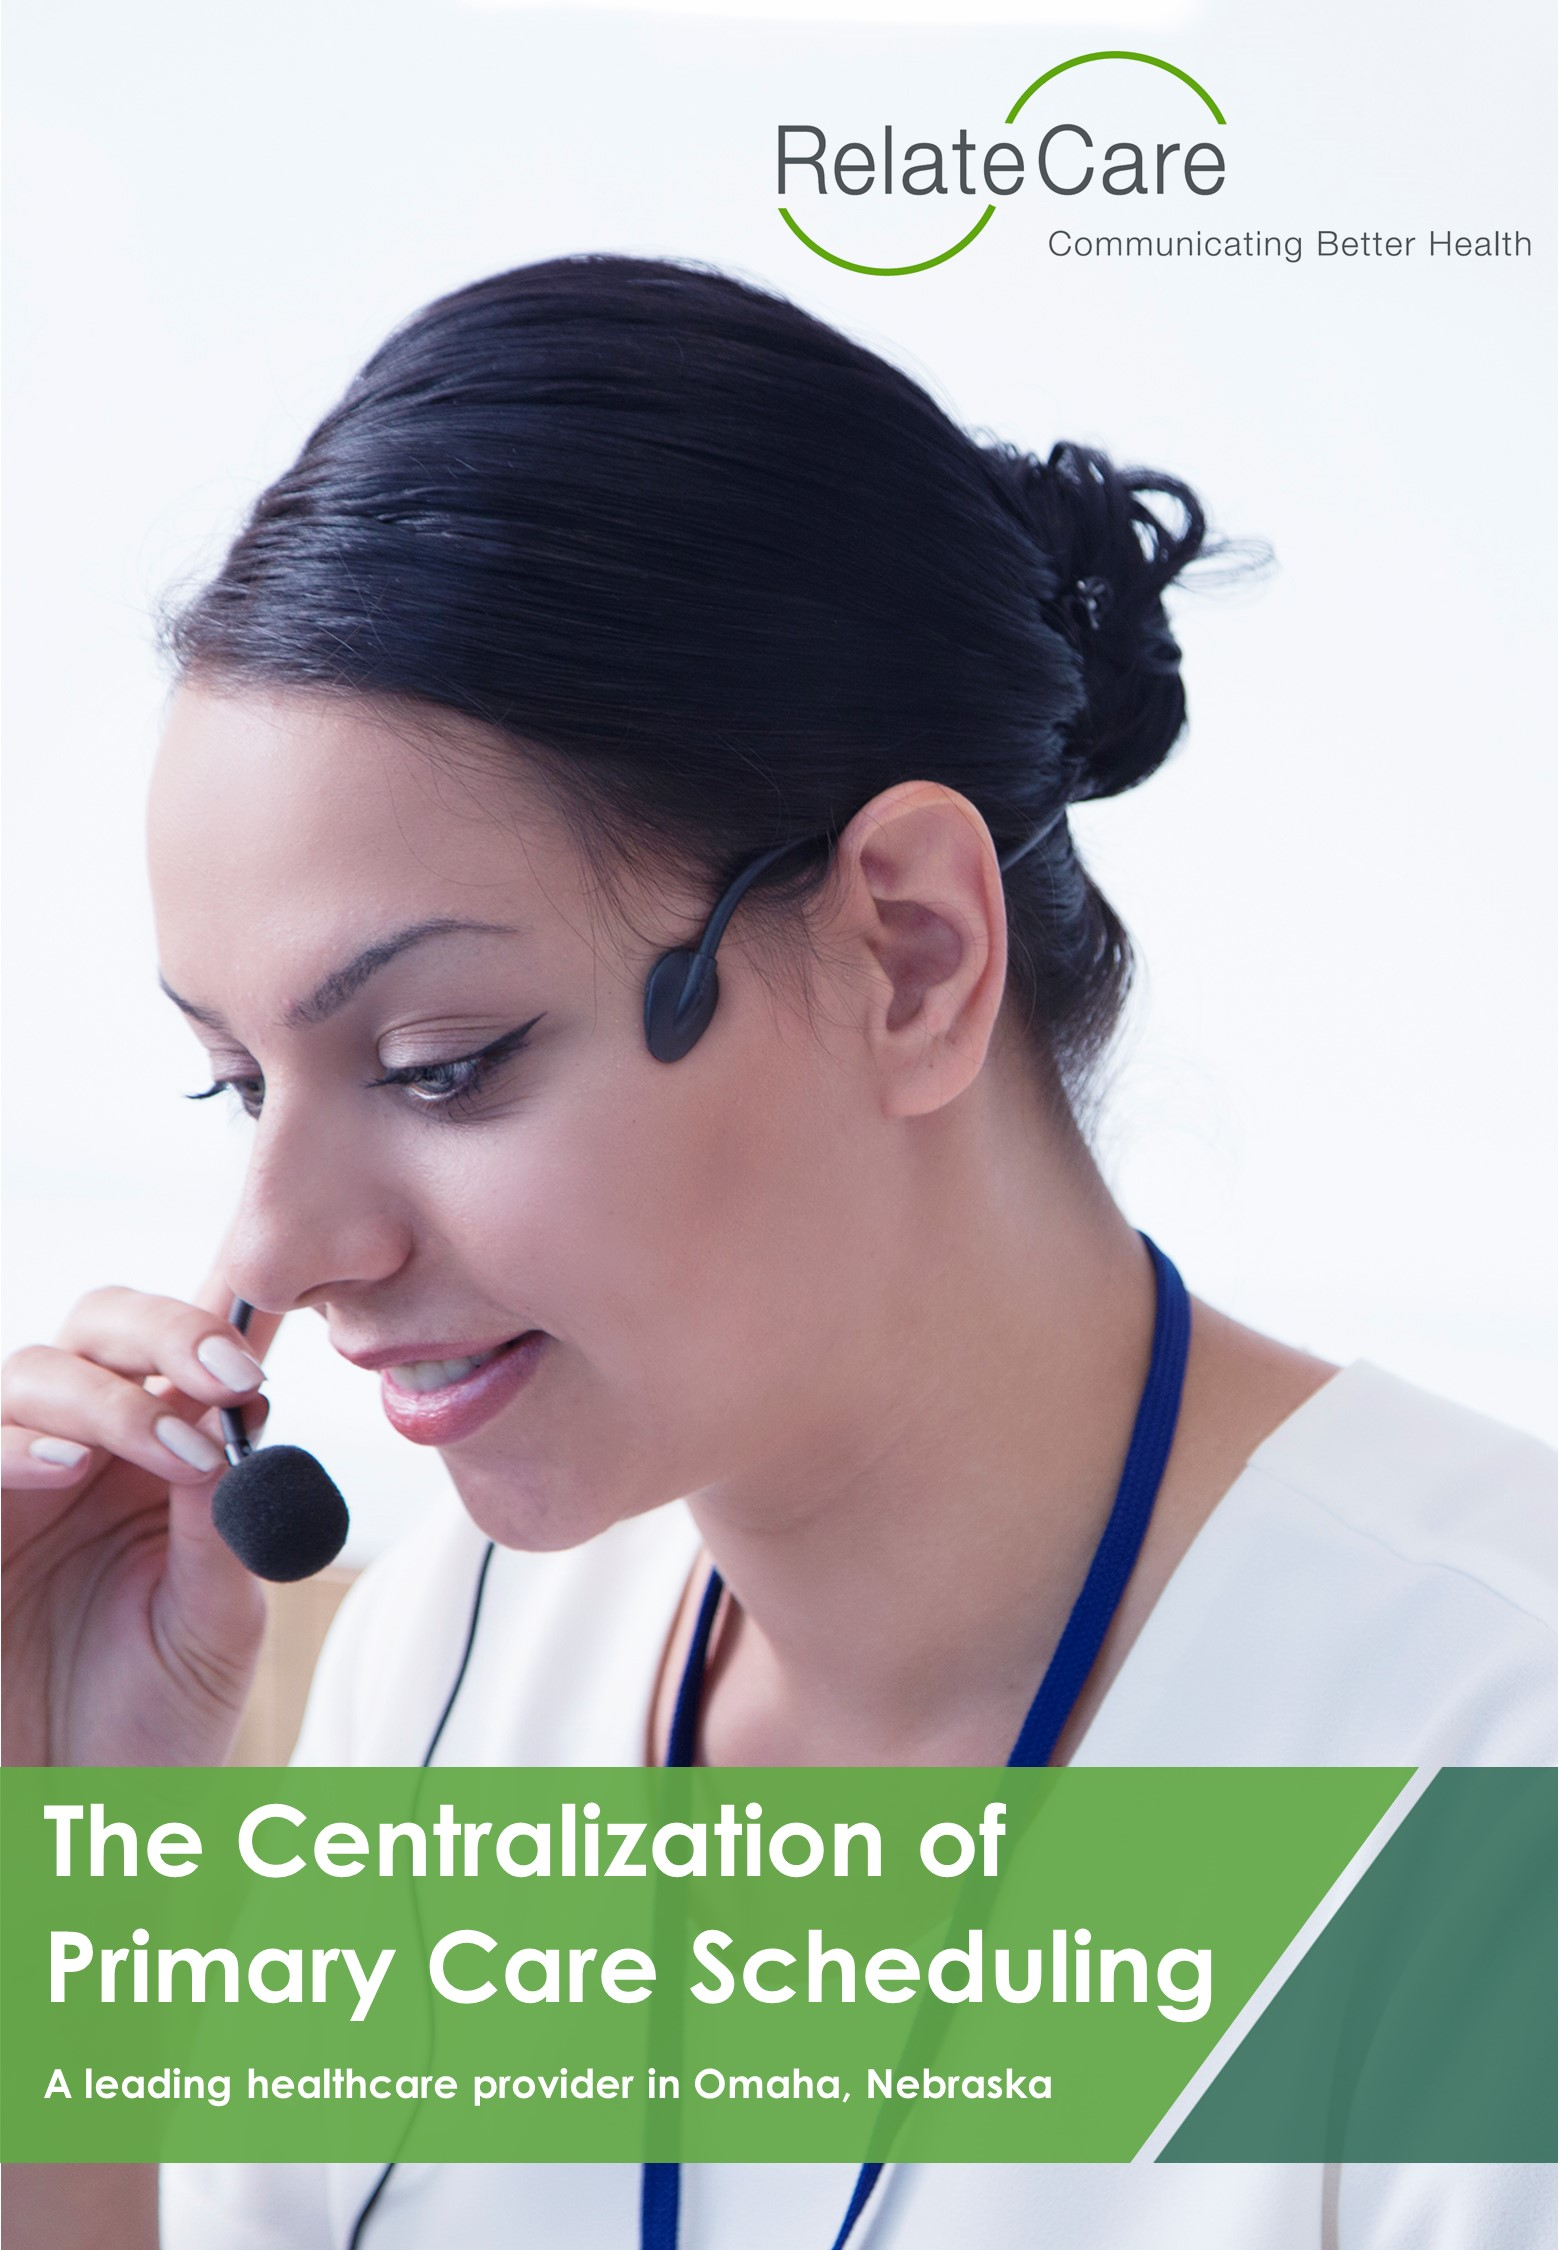 The Centralization of Primary Care Scheduling.